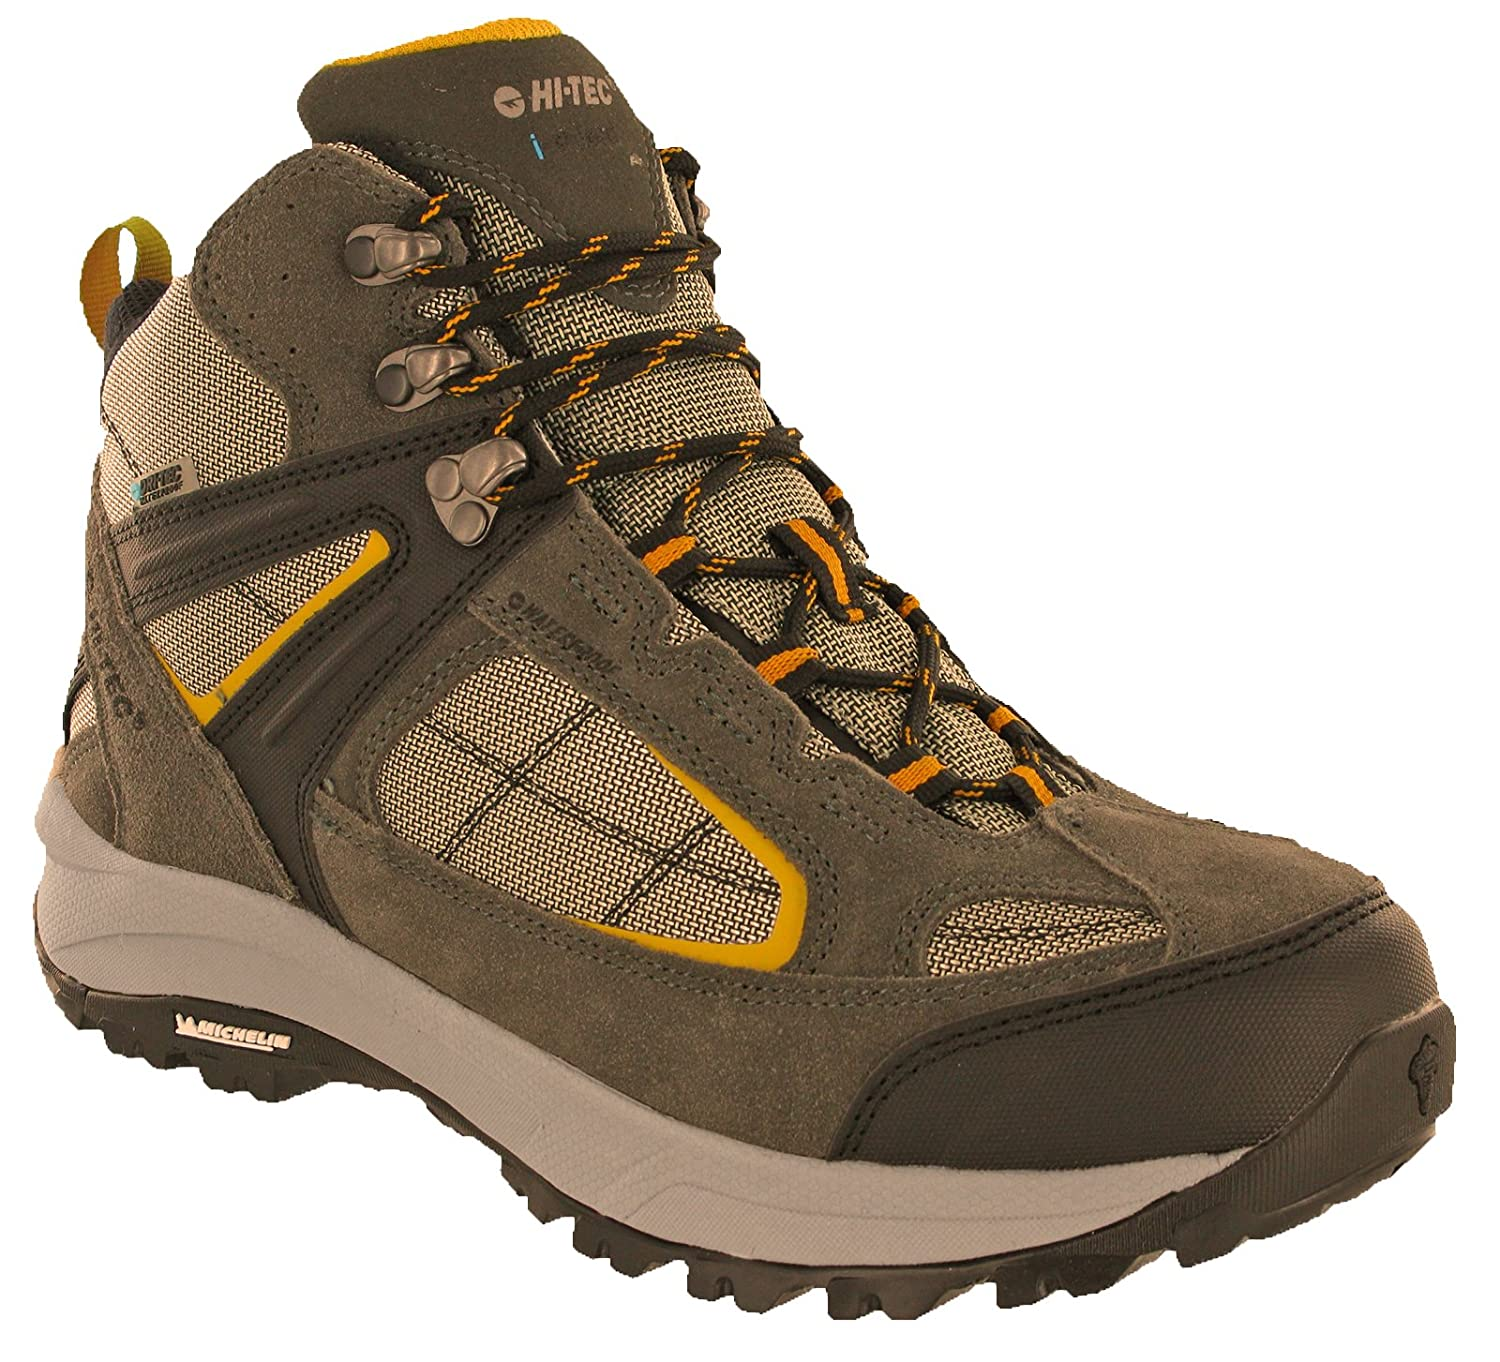 f1f32feee3b Hi-Tec Altitude VI Lite I Waterproof Boots Hiking Leather Mens UK 7-13